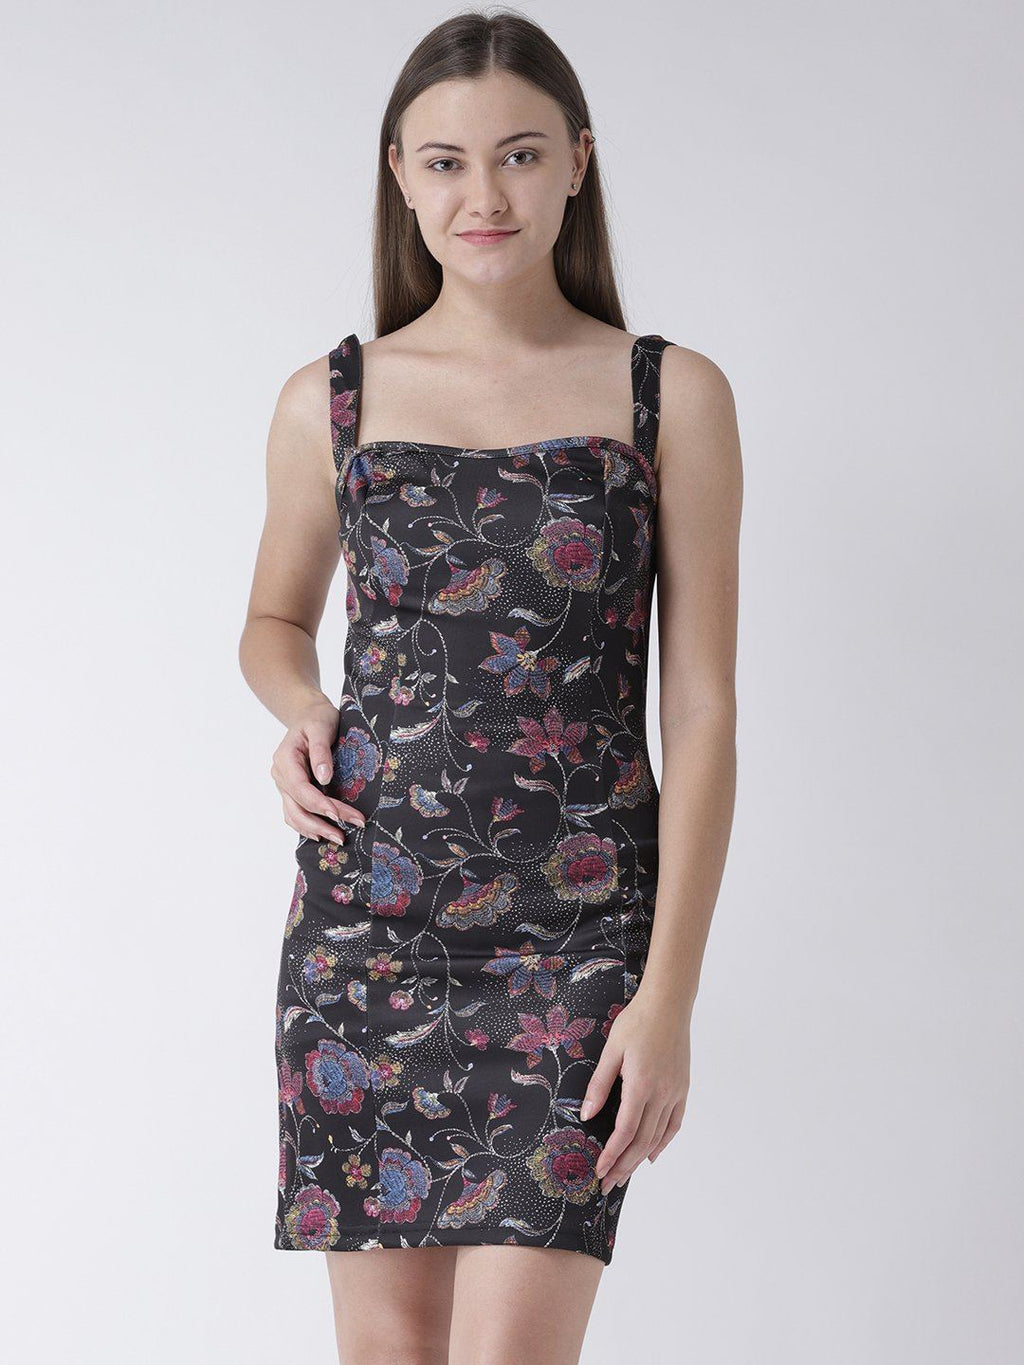 Black Floral Bodycon Dress in Scuba